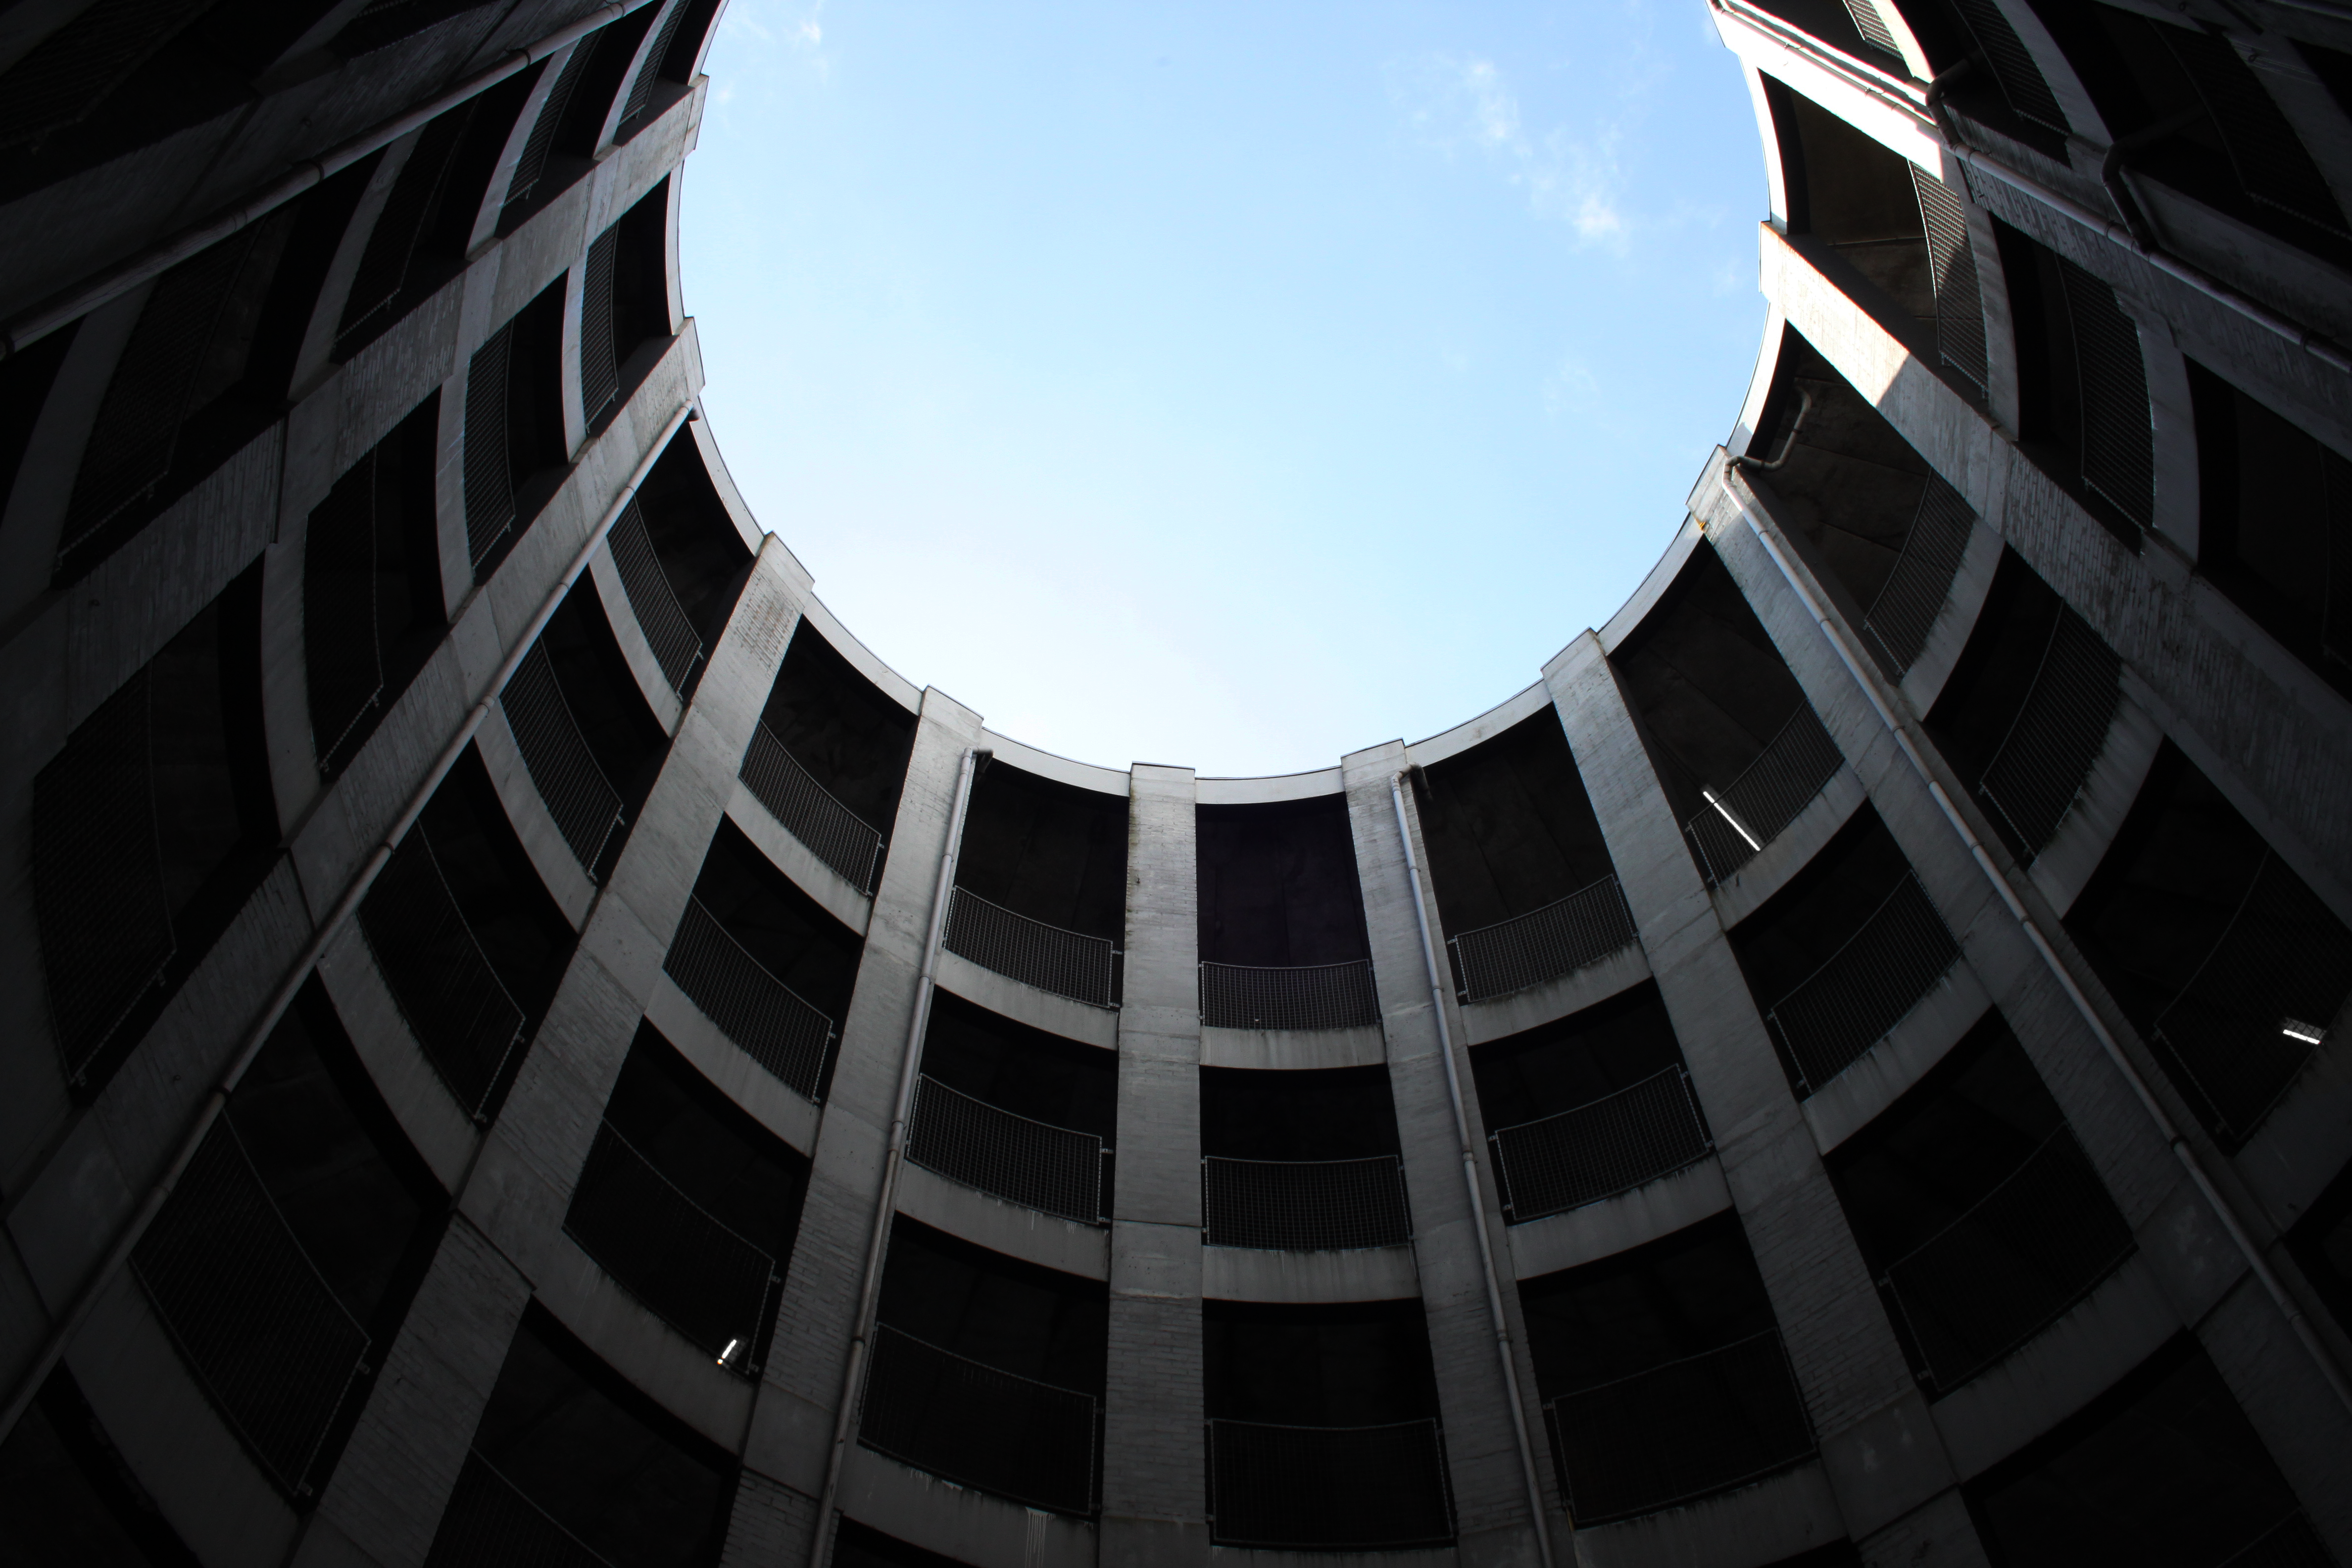 worm's eye view of building with hole on top